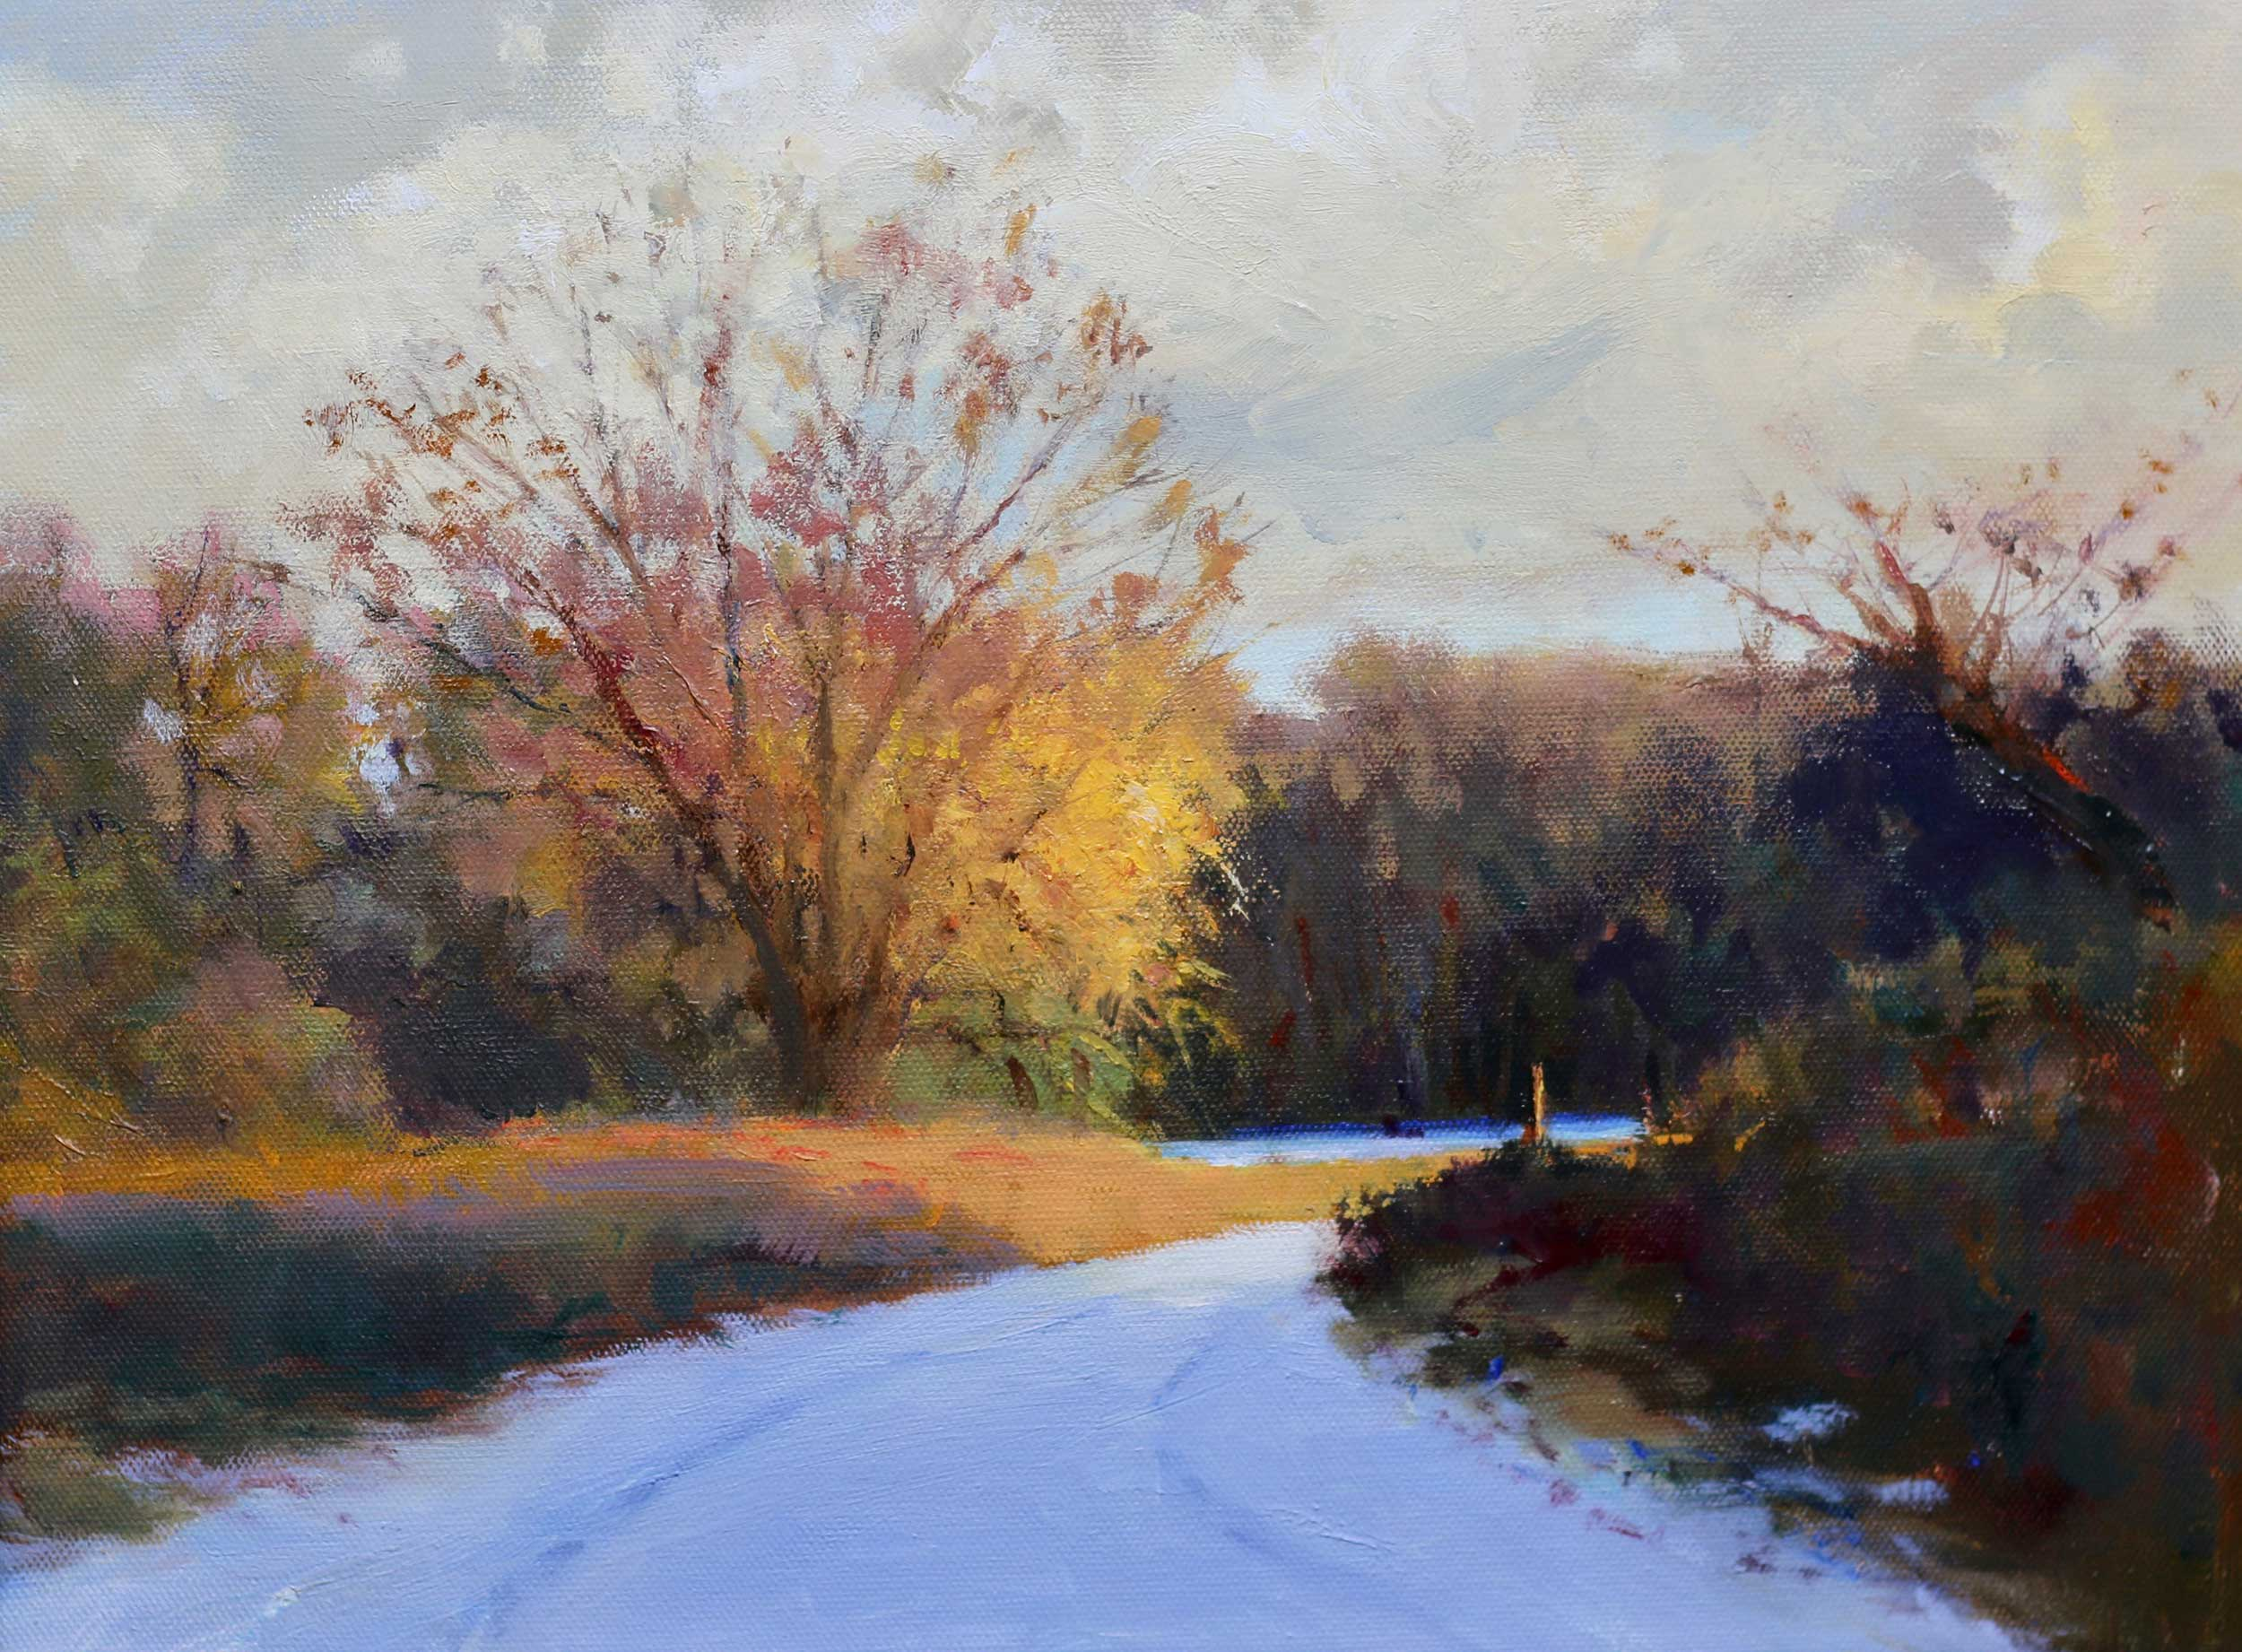 Golden Hour, Winter 20 x 16 Oil - S o l d